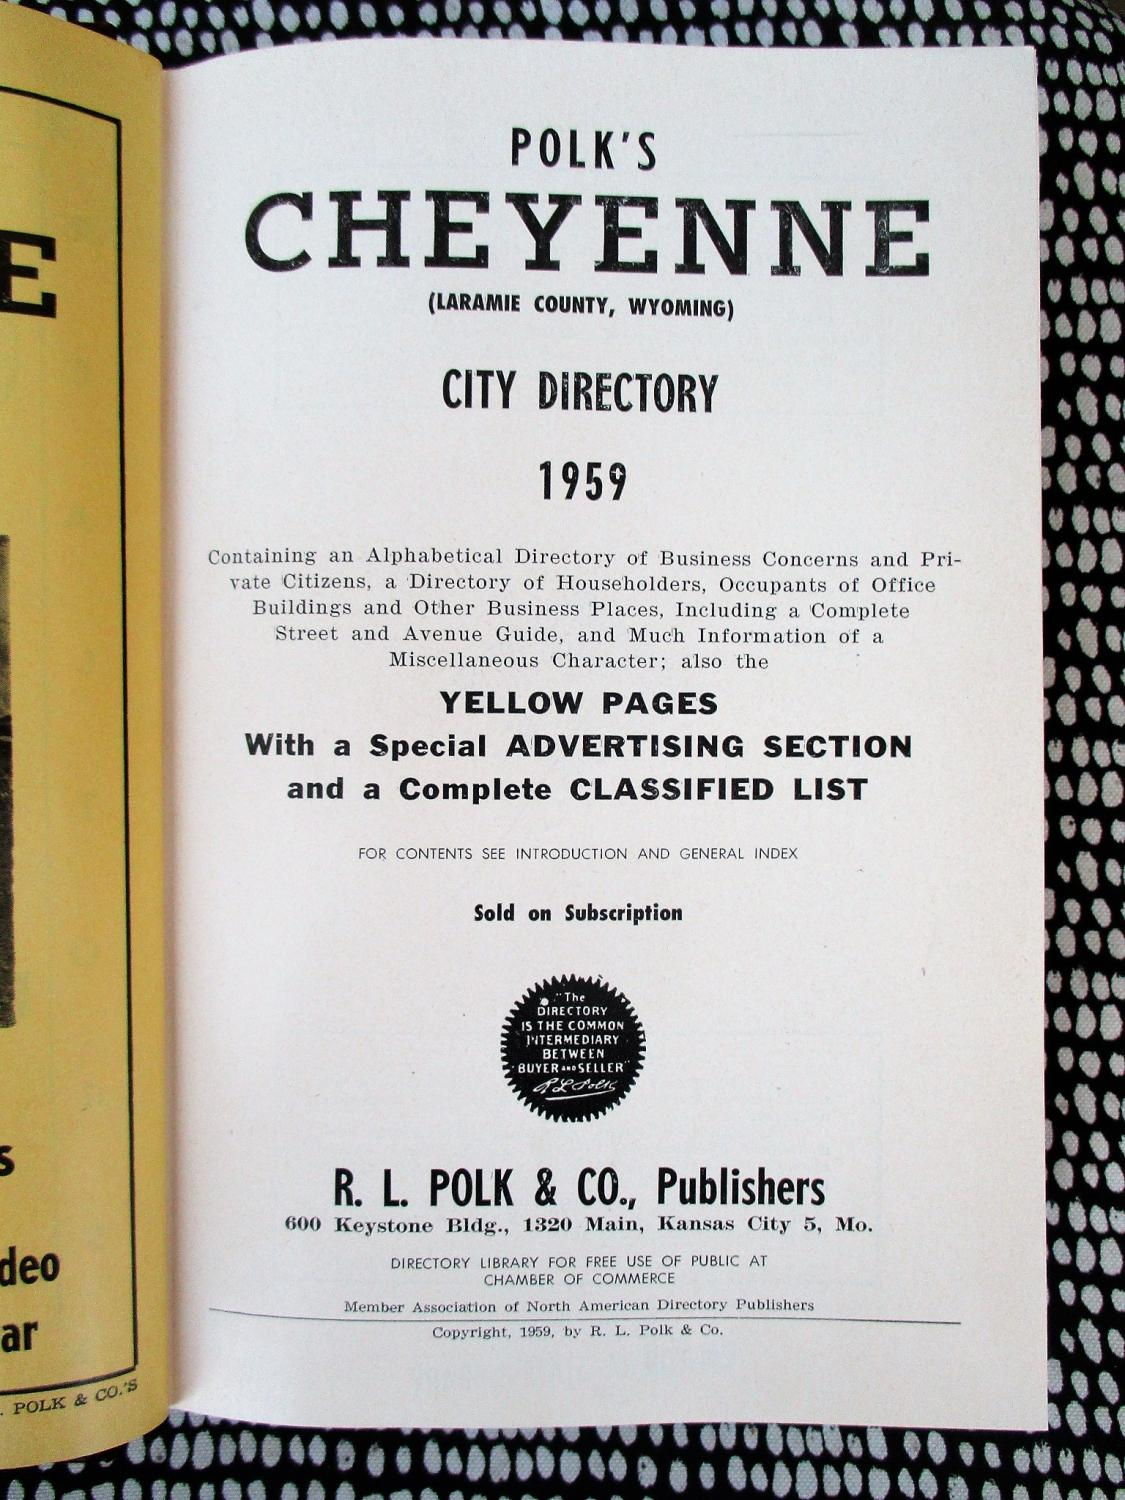 1959 CHEYENNE, WYOMING, CITY DIRECTORY with